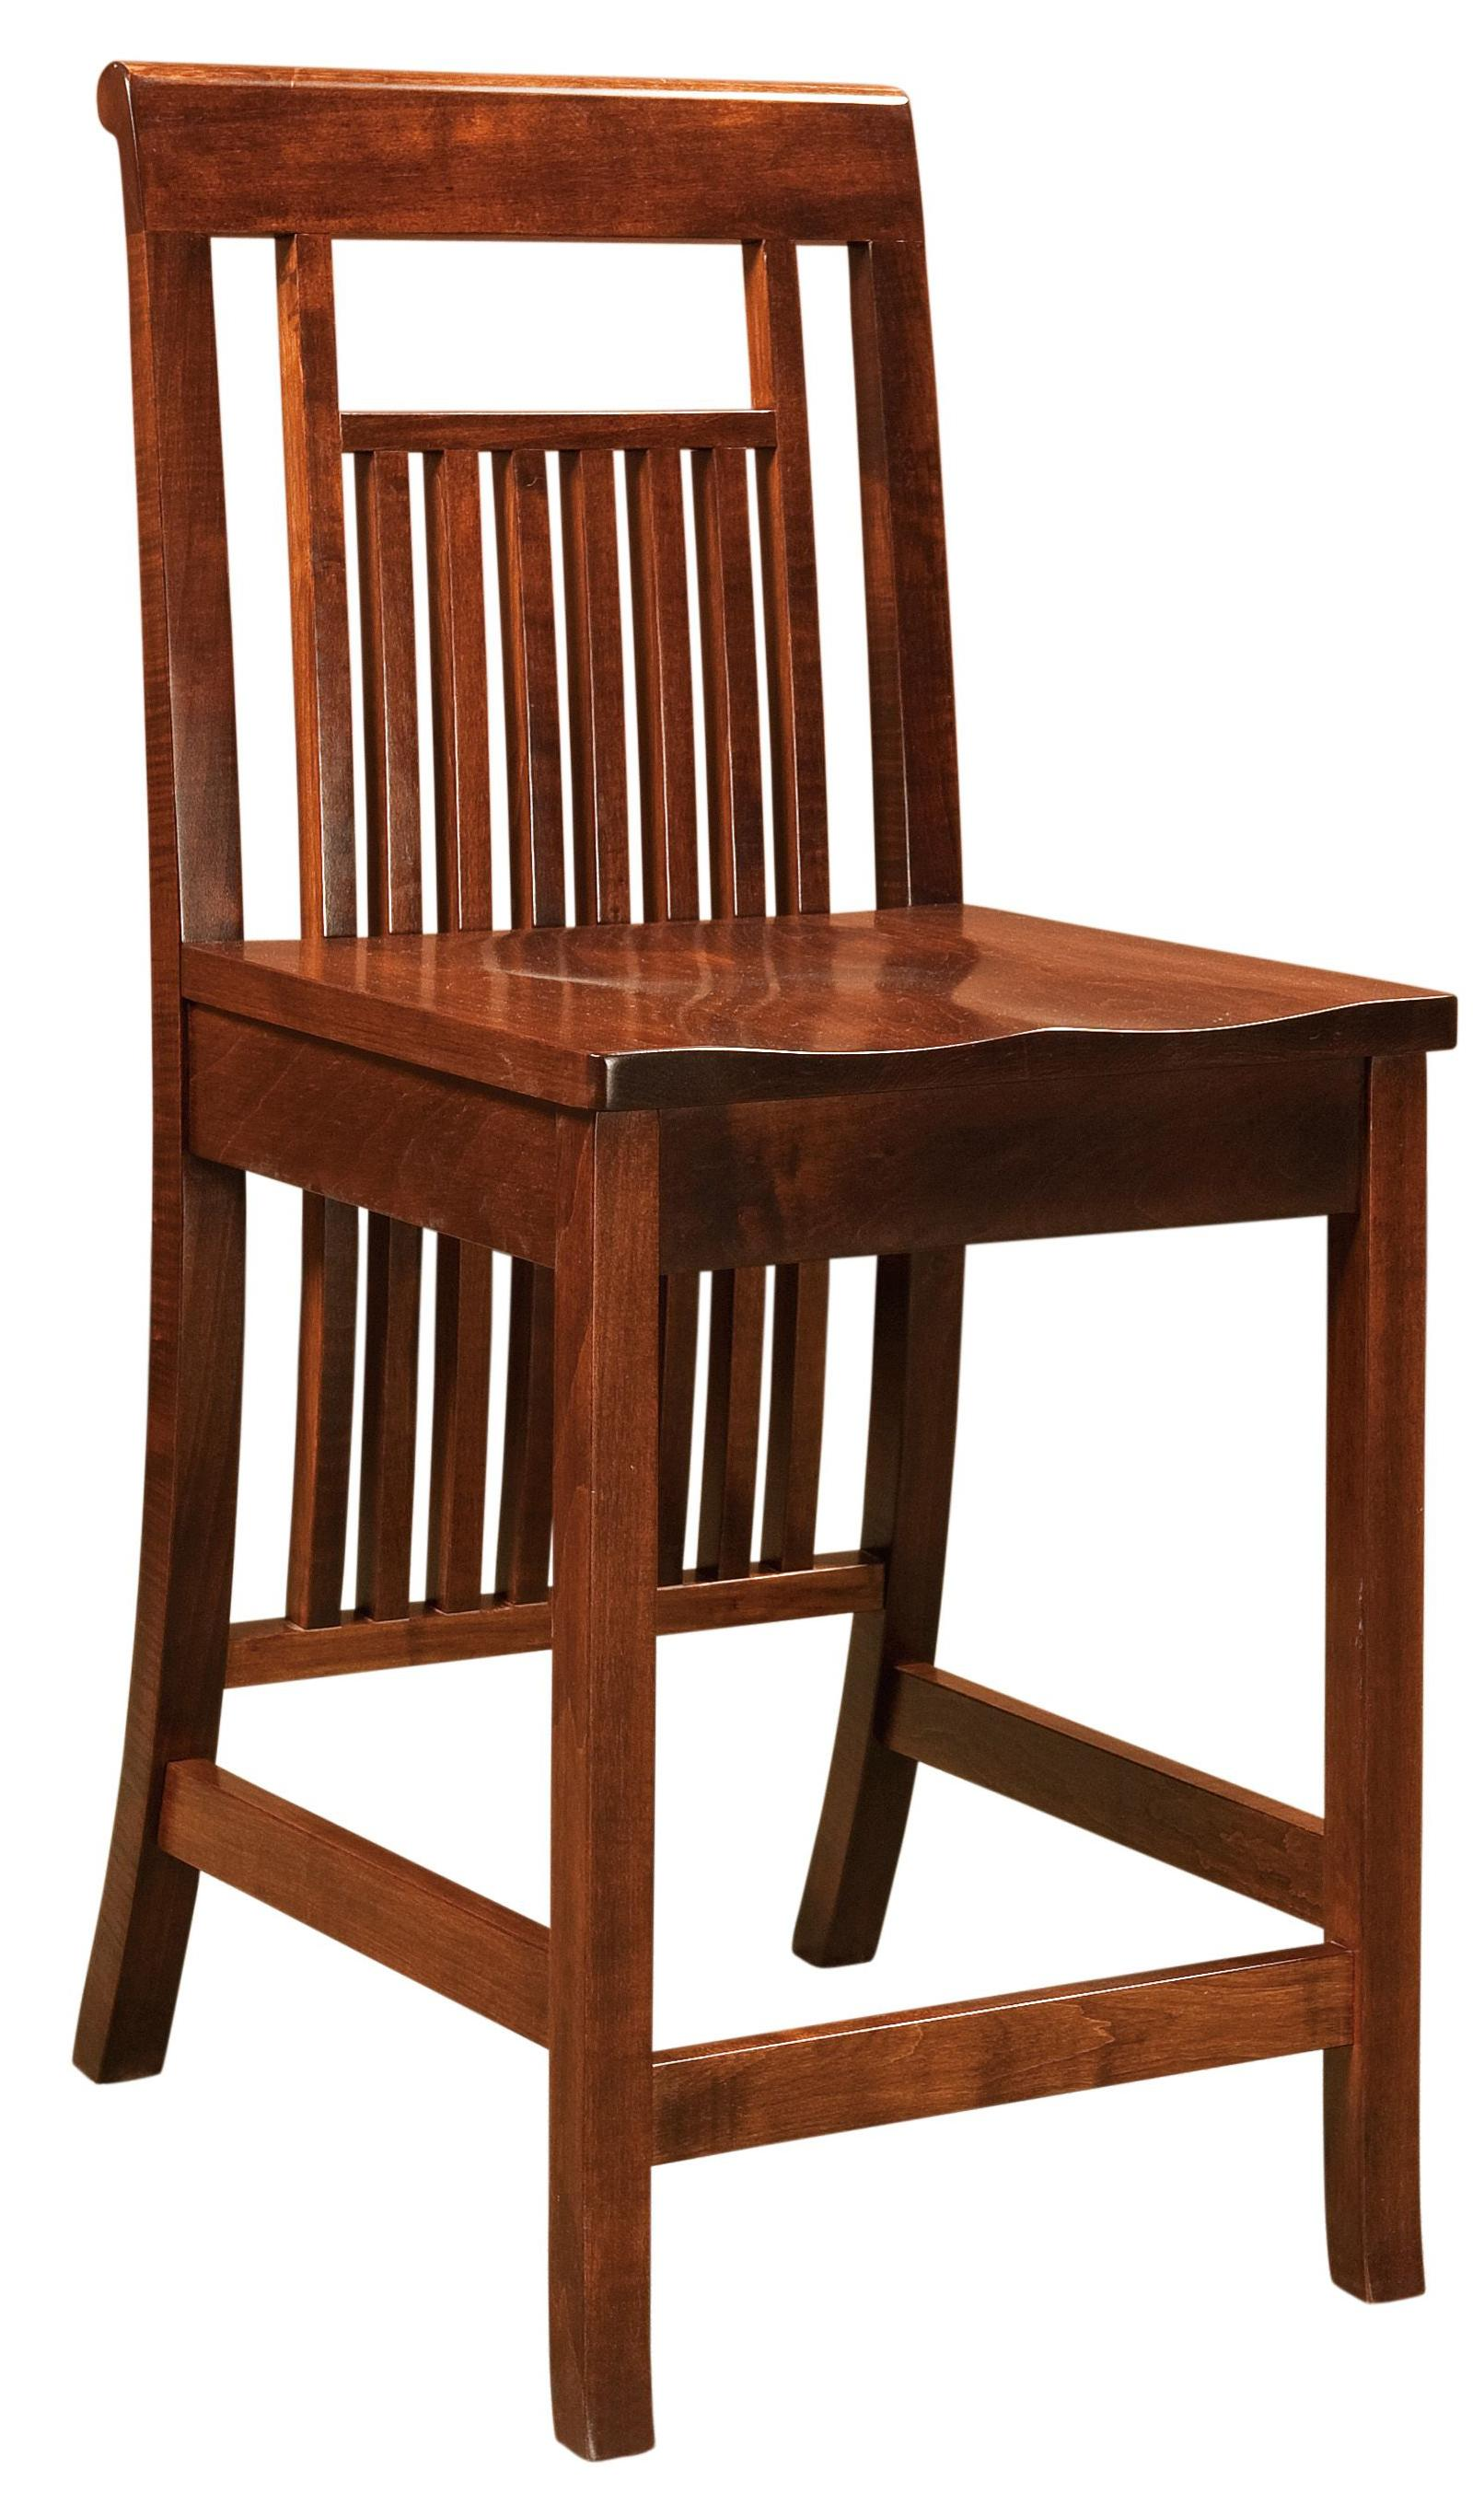 Bar Chairs Savannah Bar Chair by Amish Impressions by Fusion Designs at Mueller Furniture